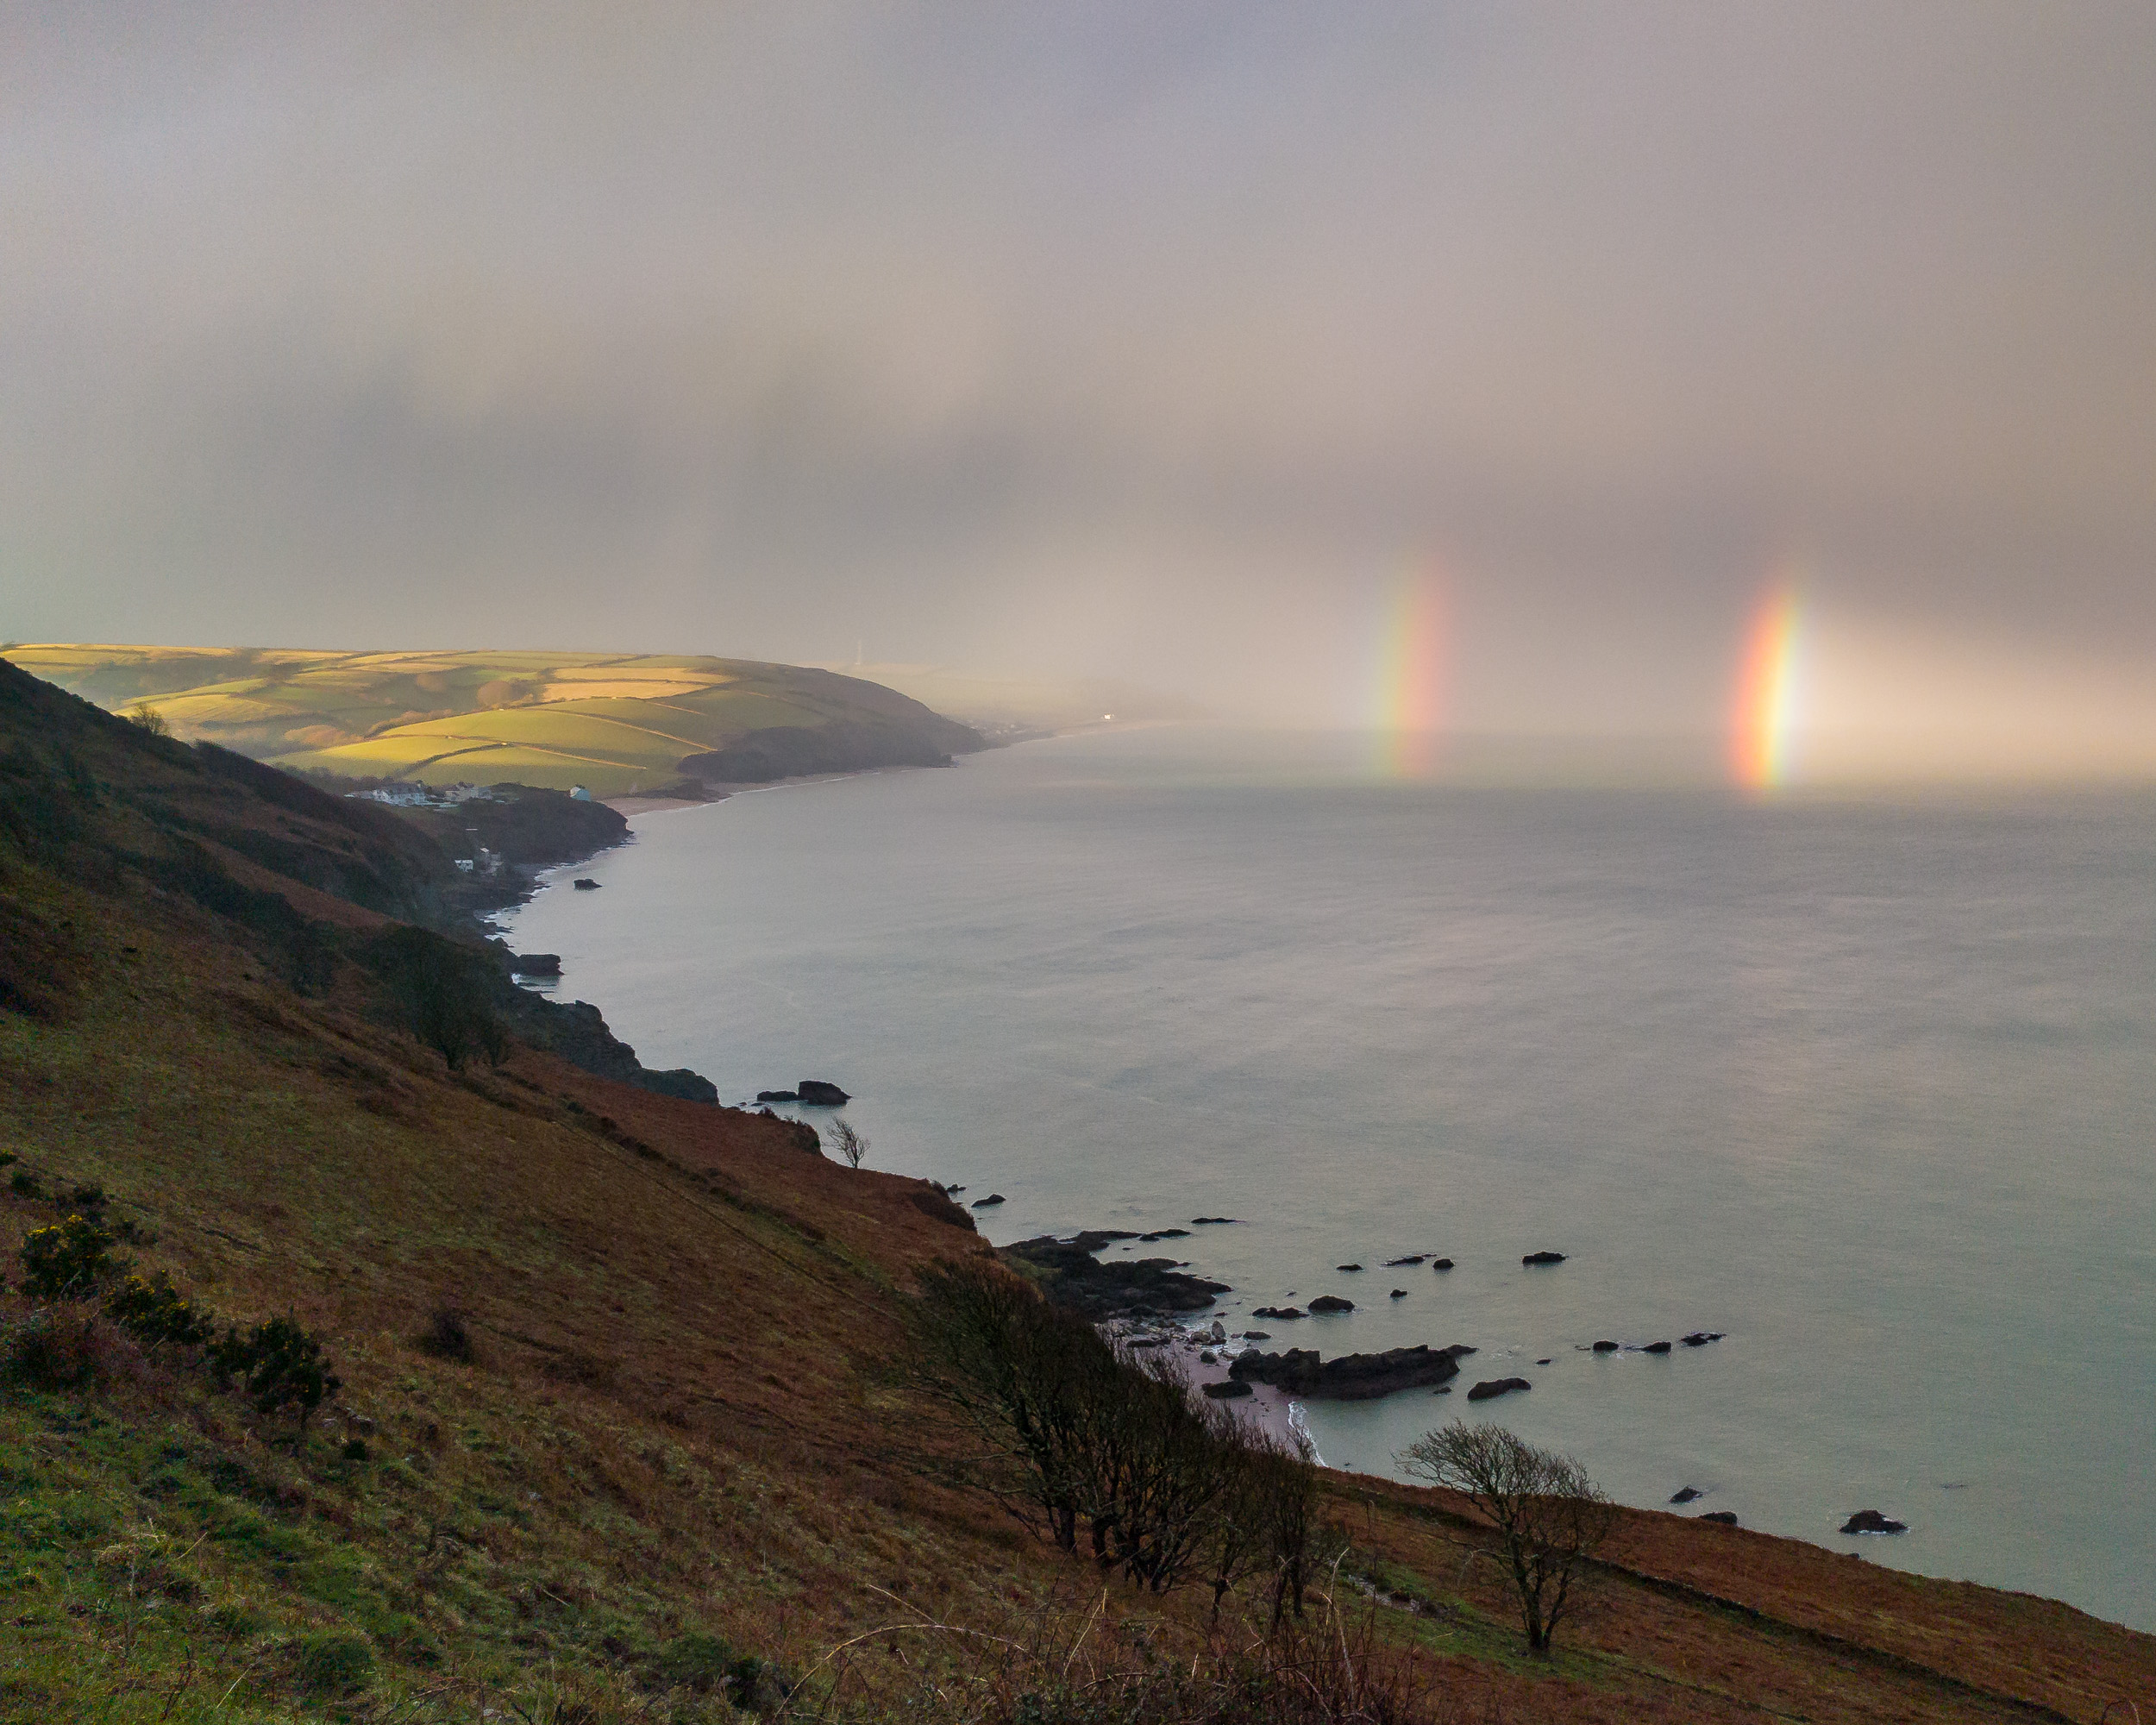 Spectacular conditions immediately after the storm had passed. I had to be quick just to grab this shot with the phone.